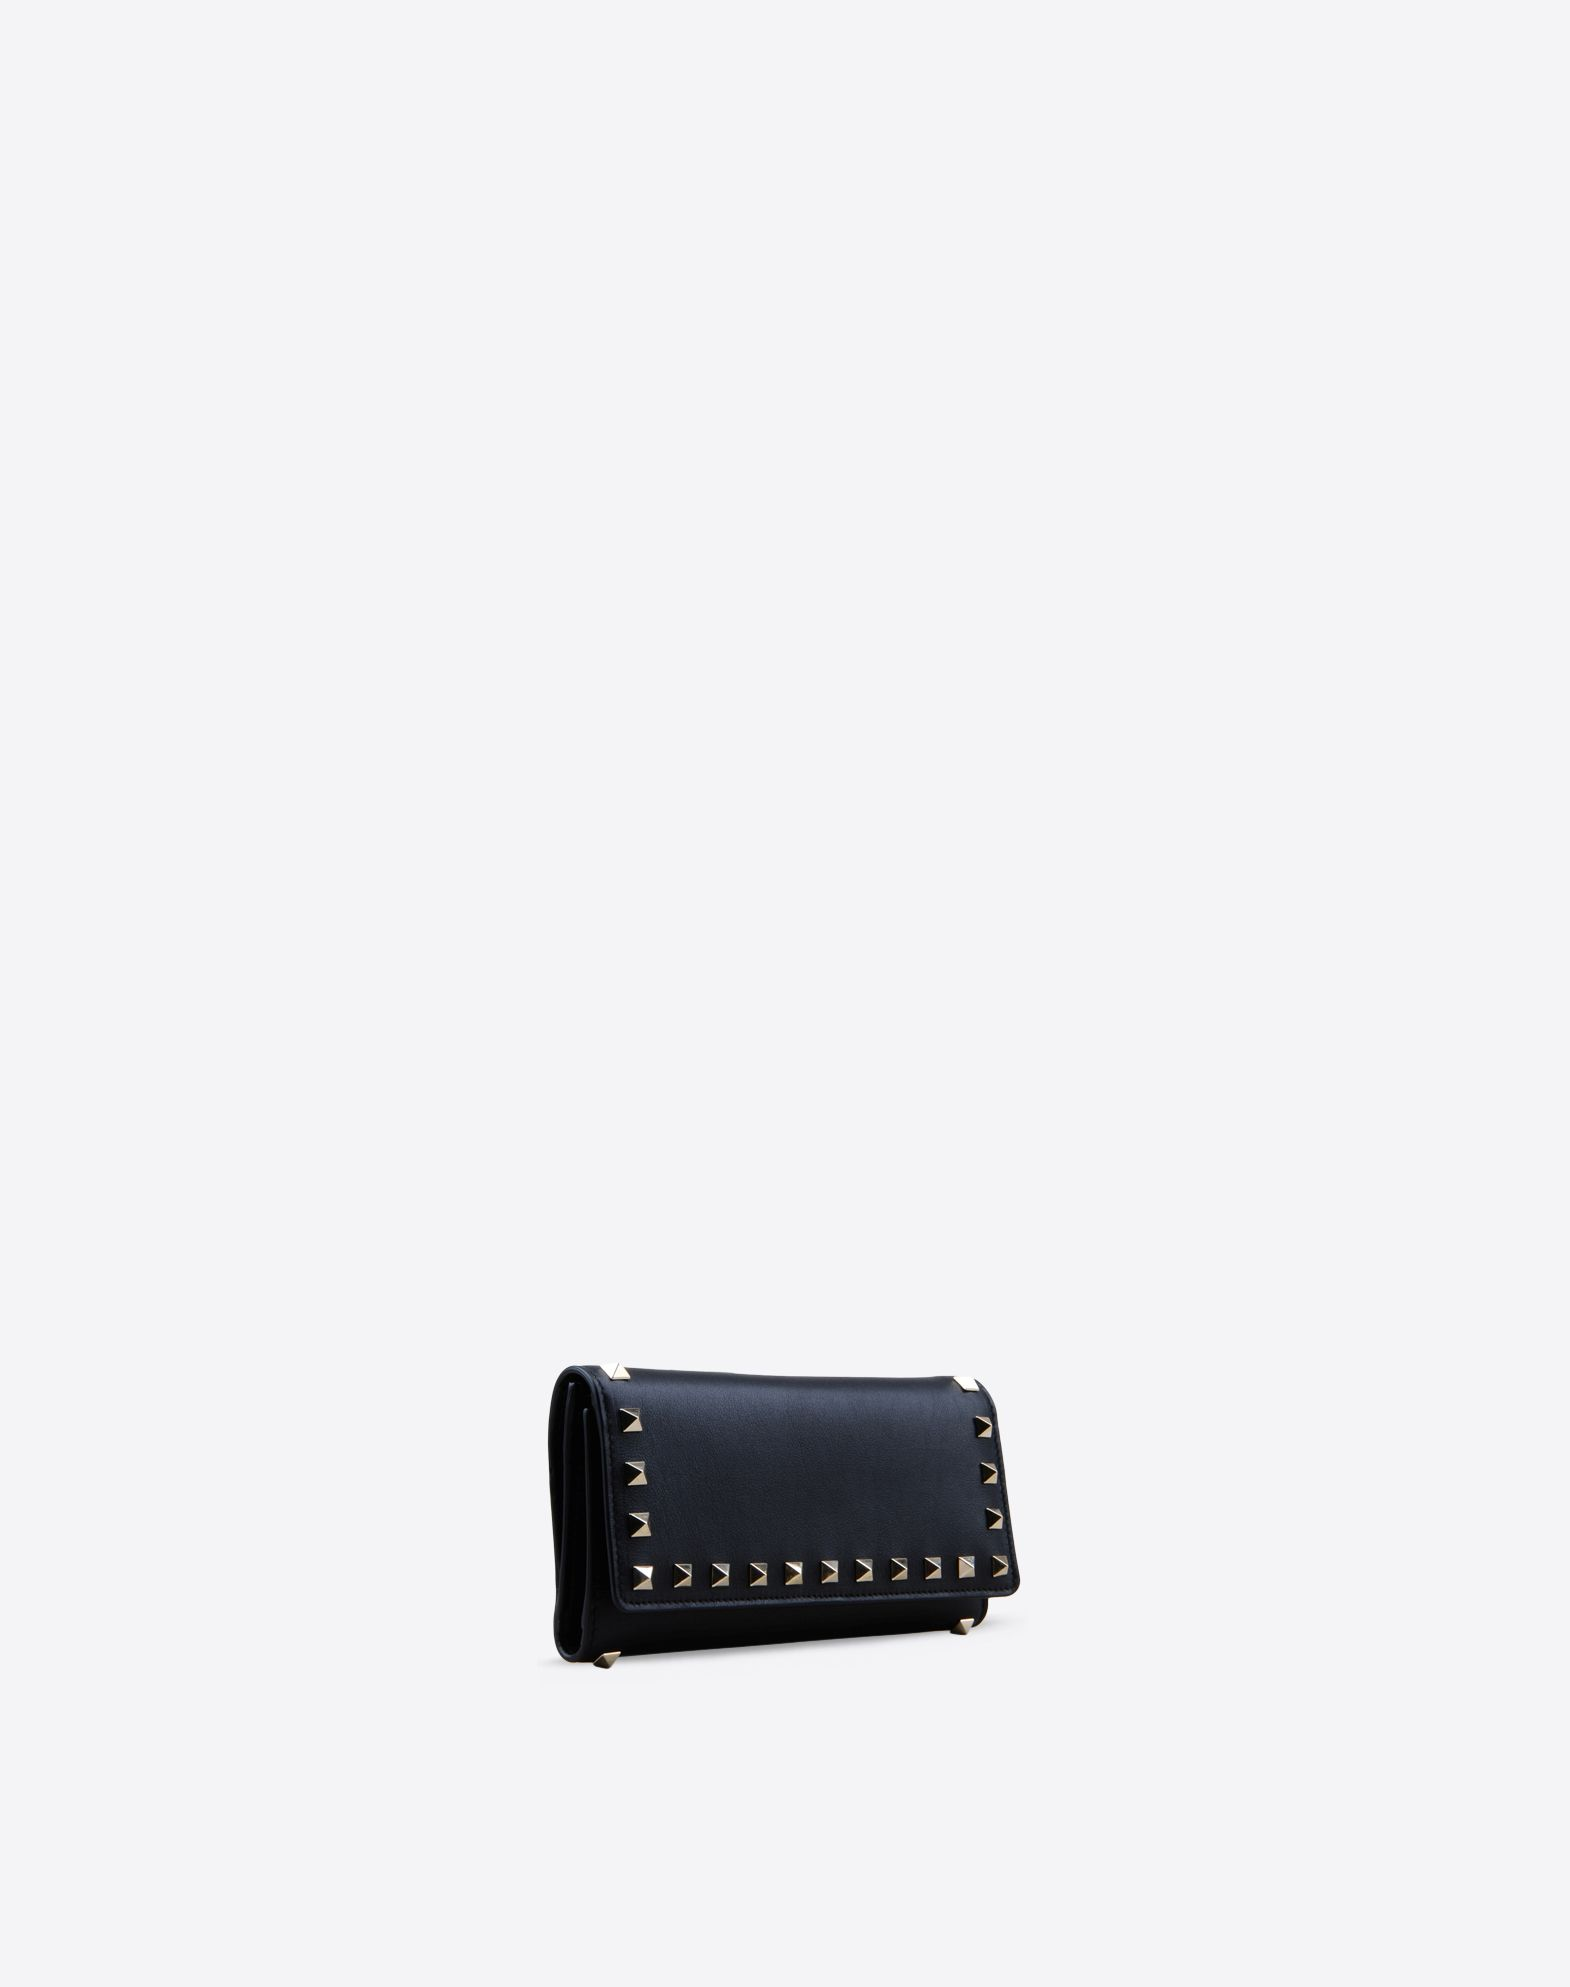 VALENTINO Logo detail Studs Solid color Internal card slots Snap button closure  46378483kd